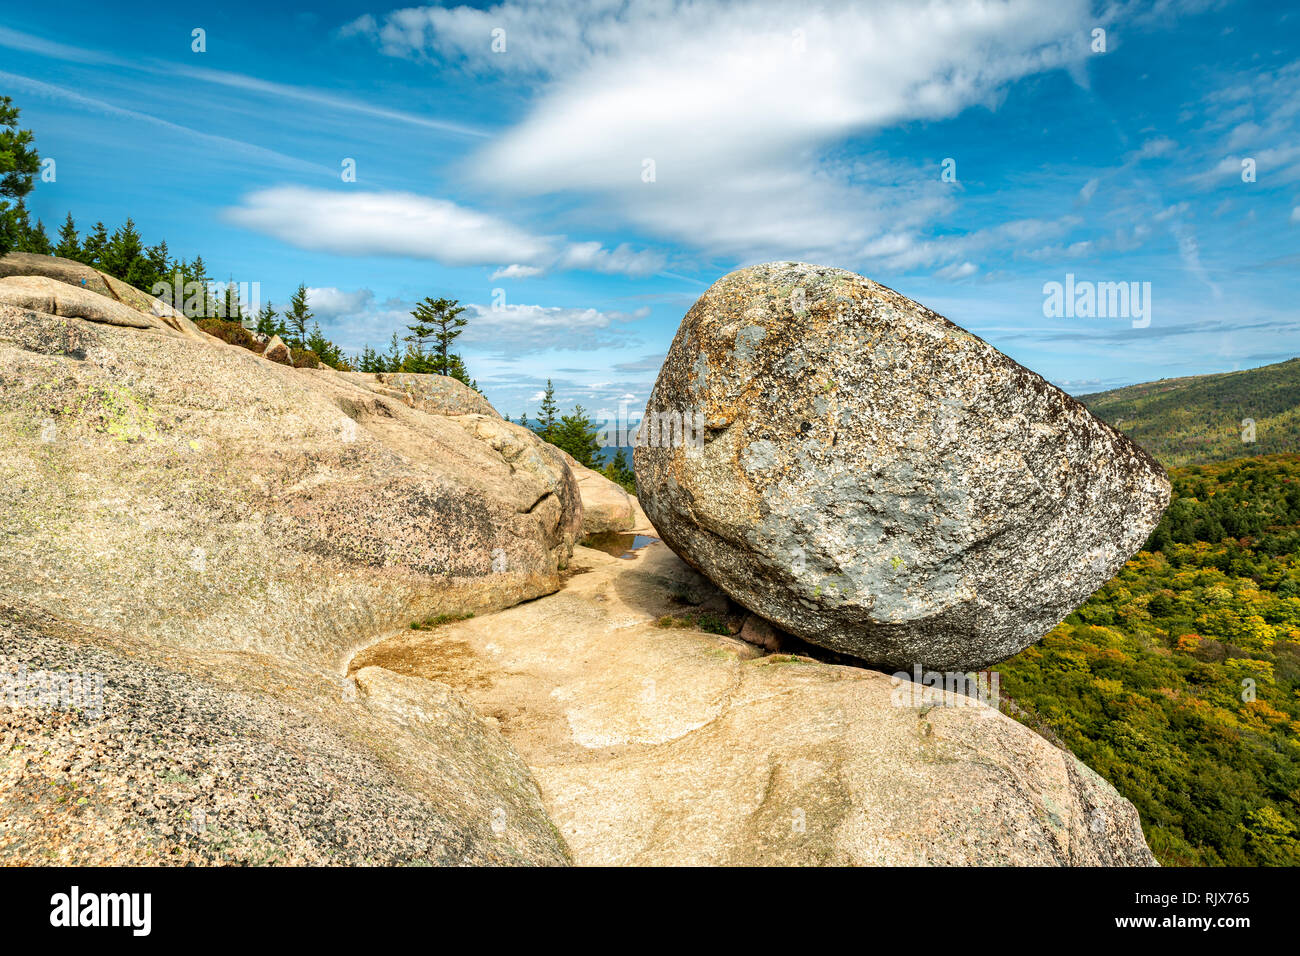 Bubble Rock in Acadia National Park - Stock Image